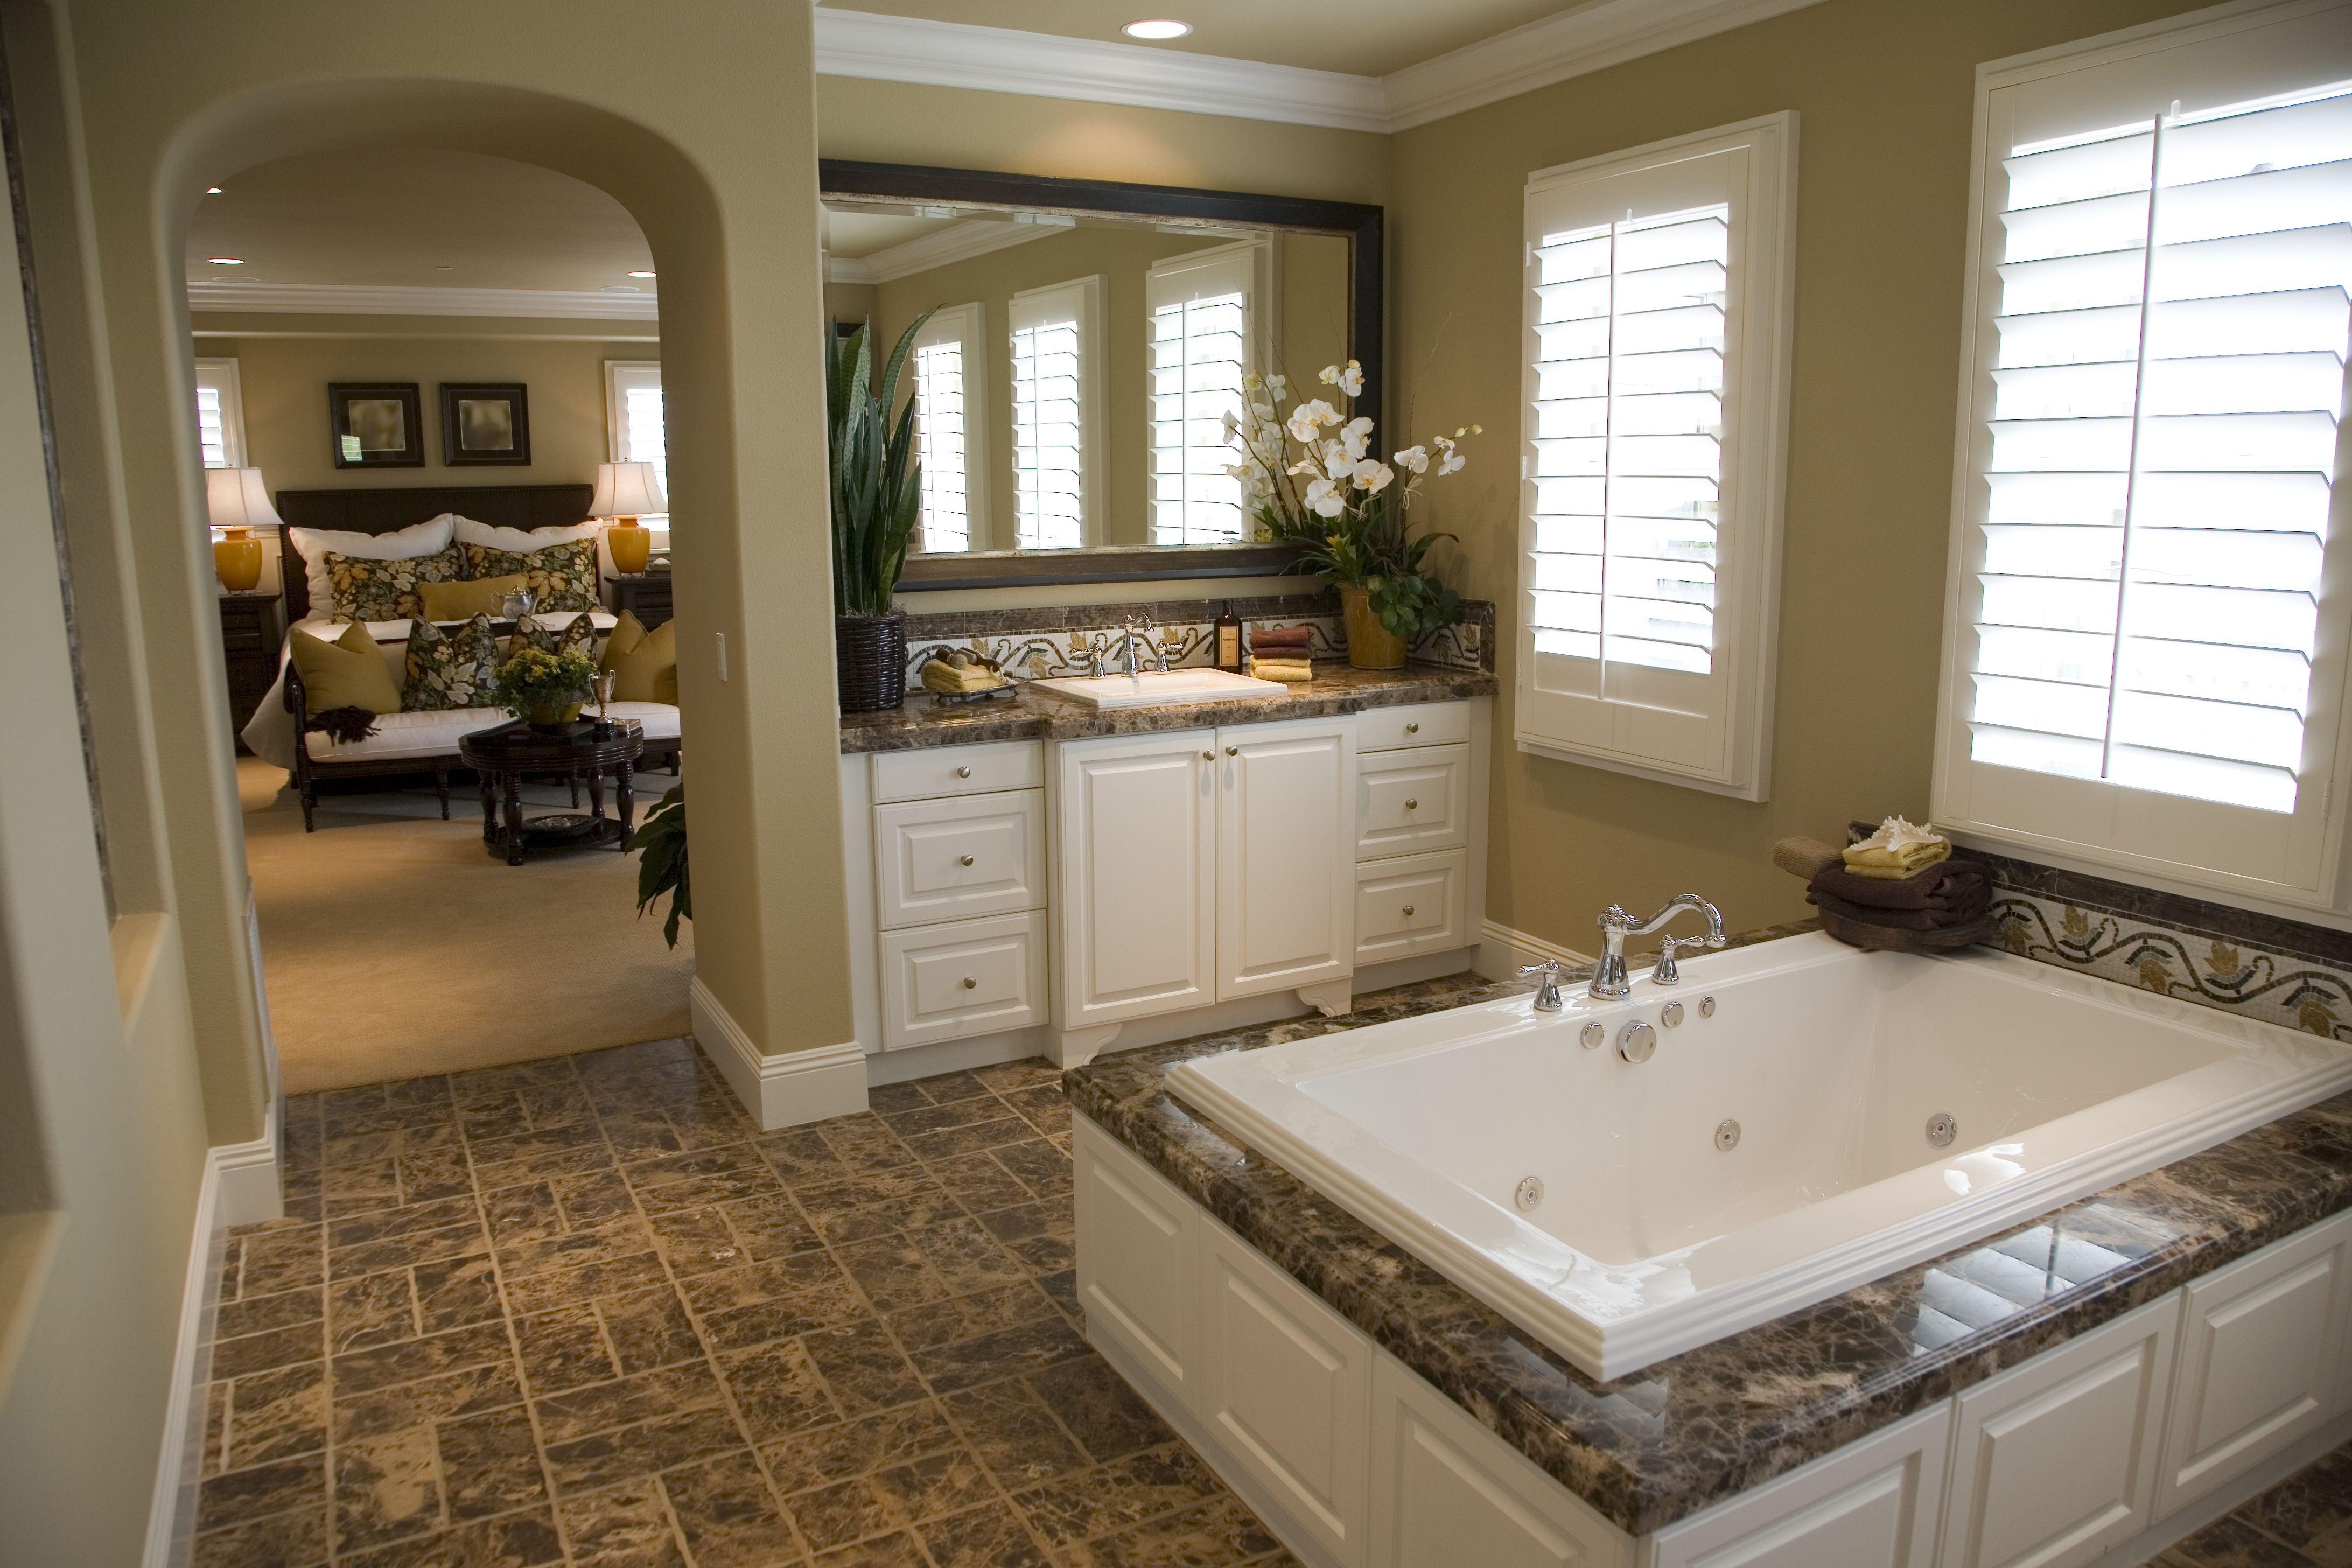 Bathroom paint ideas brown - Neutral Bedroom Colors Bedroom And Living Room Image Collections